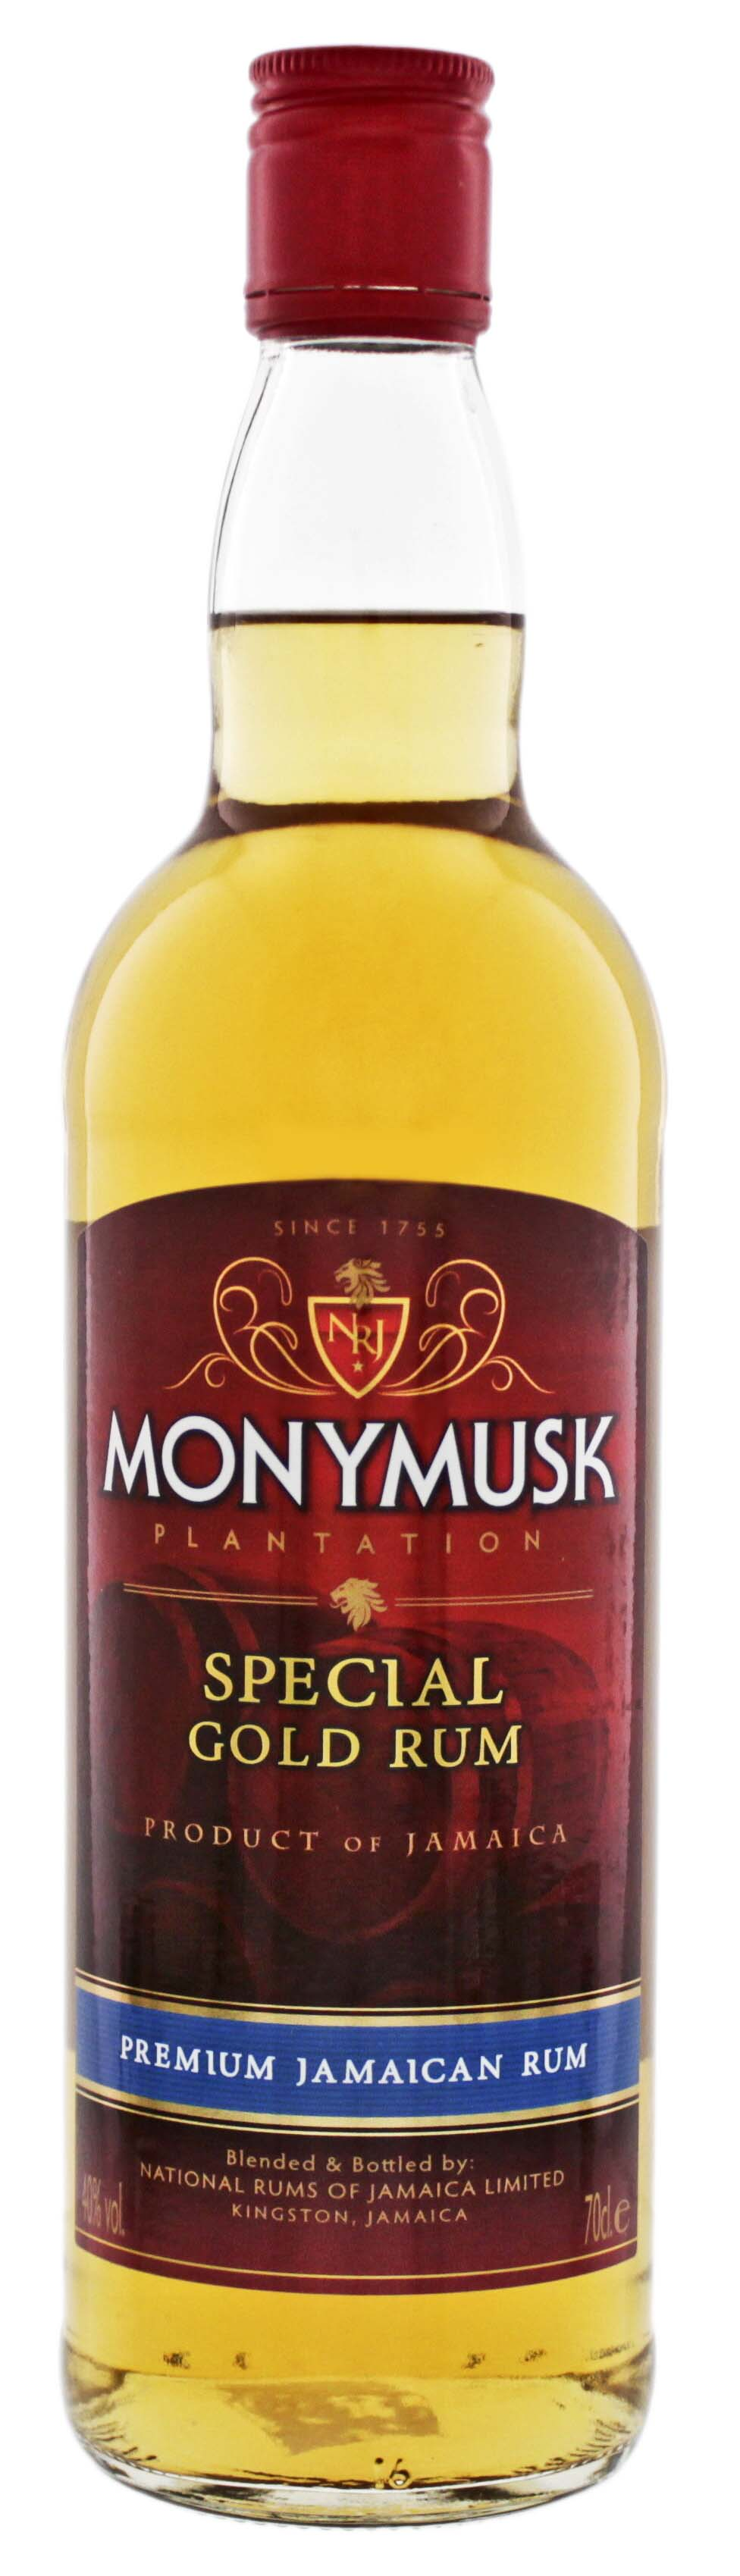 Monymusk Plantation Special Gold Rum 0,7L